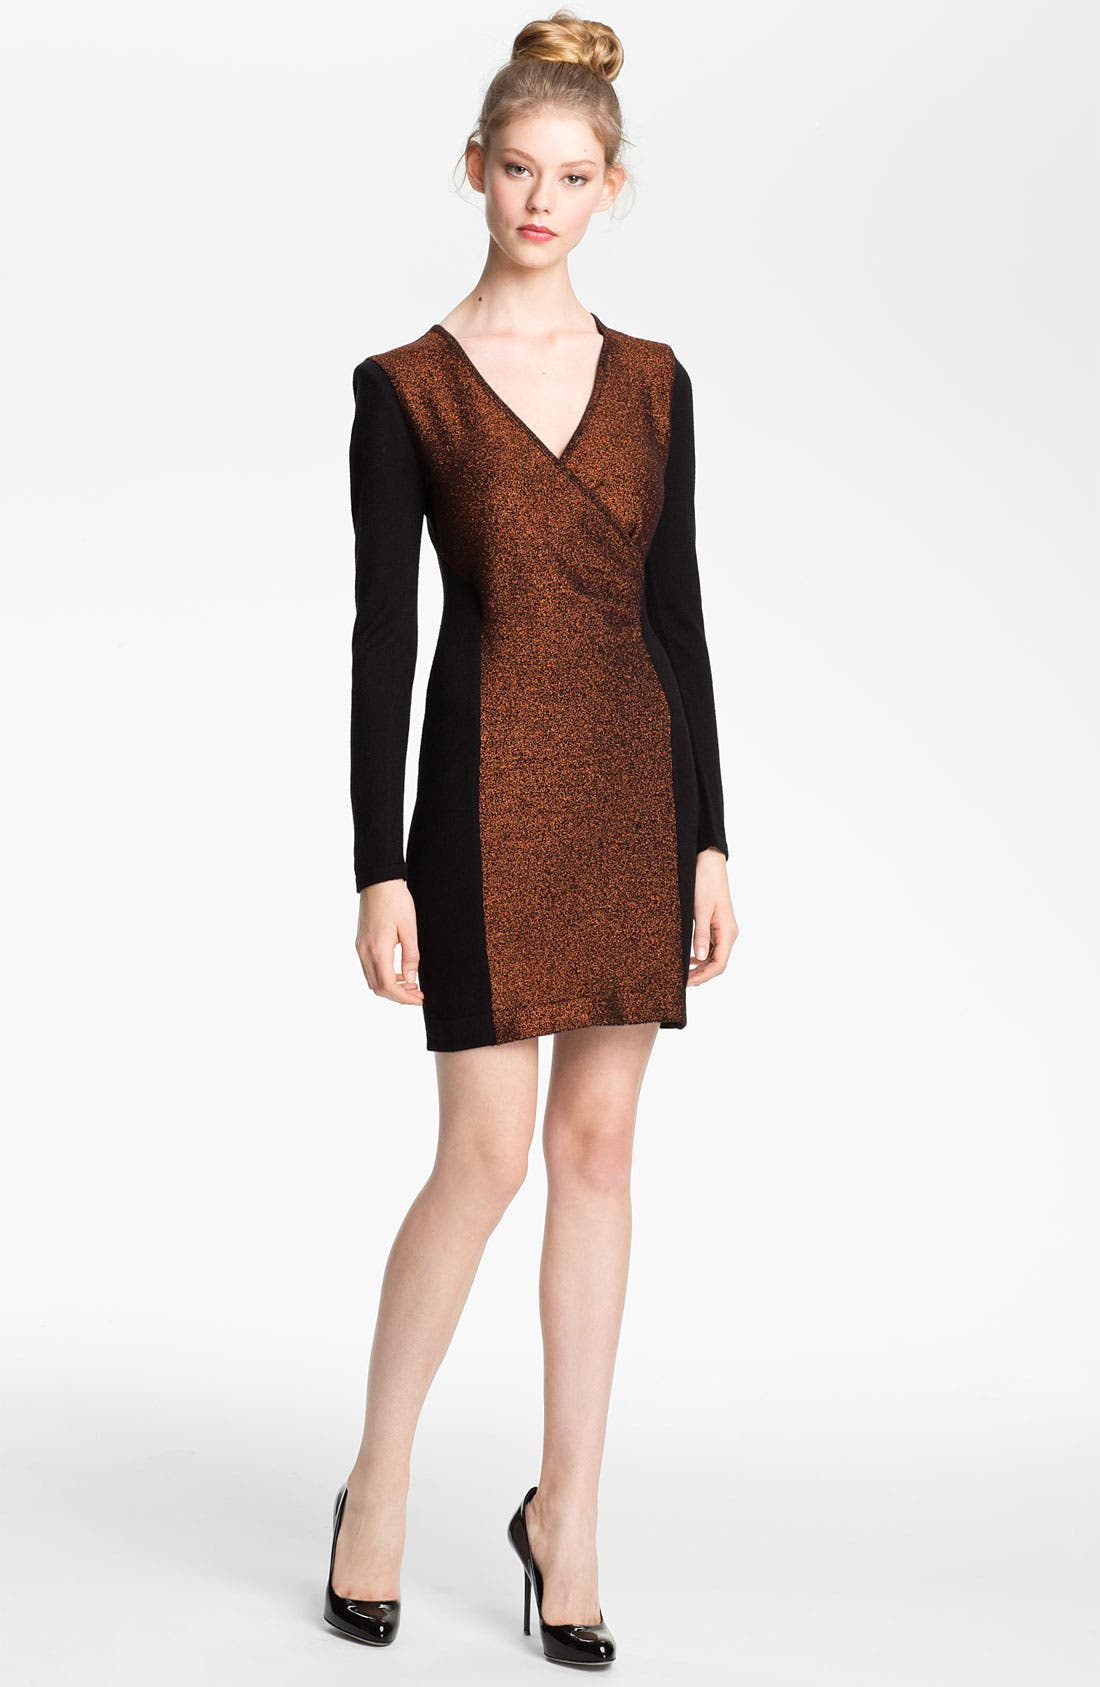 Alternate Image 1 Selected - Mcginn 'Stacie' Colorblock Knit Dress